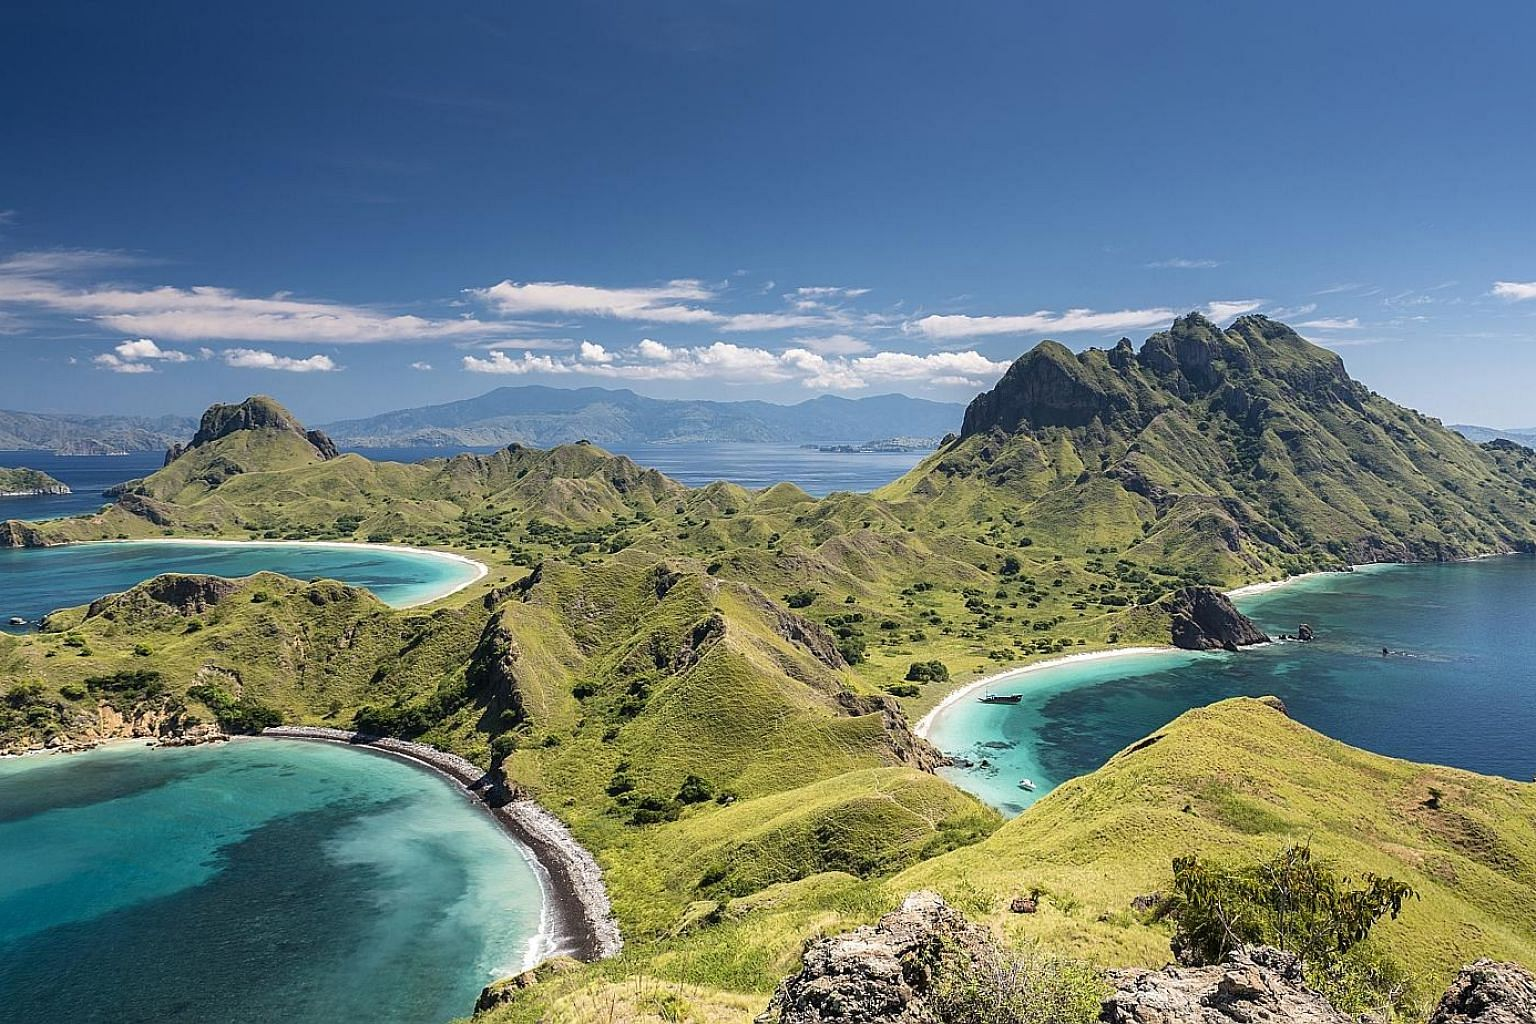 The top of the hill on Padar island offers views of Komodo National Park and its crescent beaches.